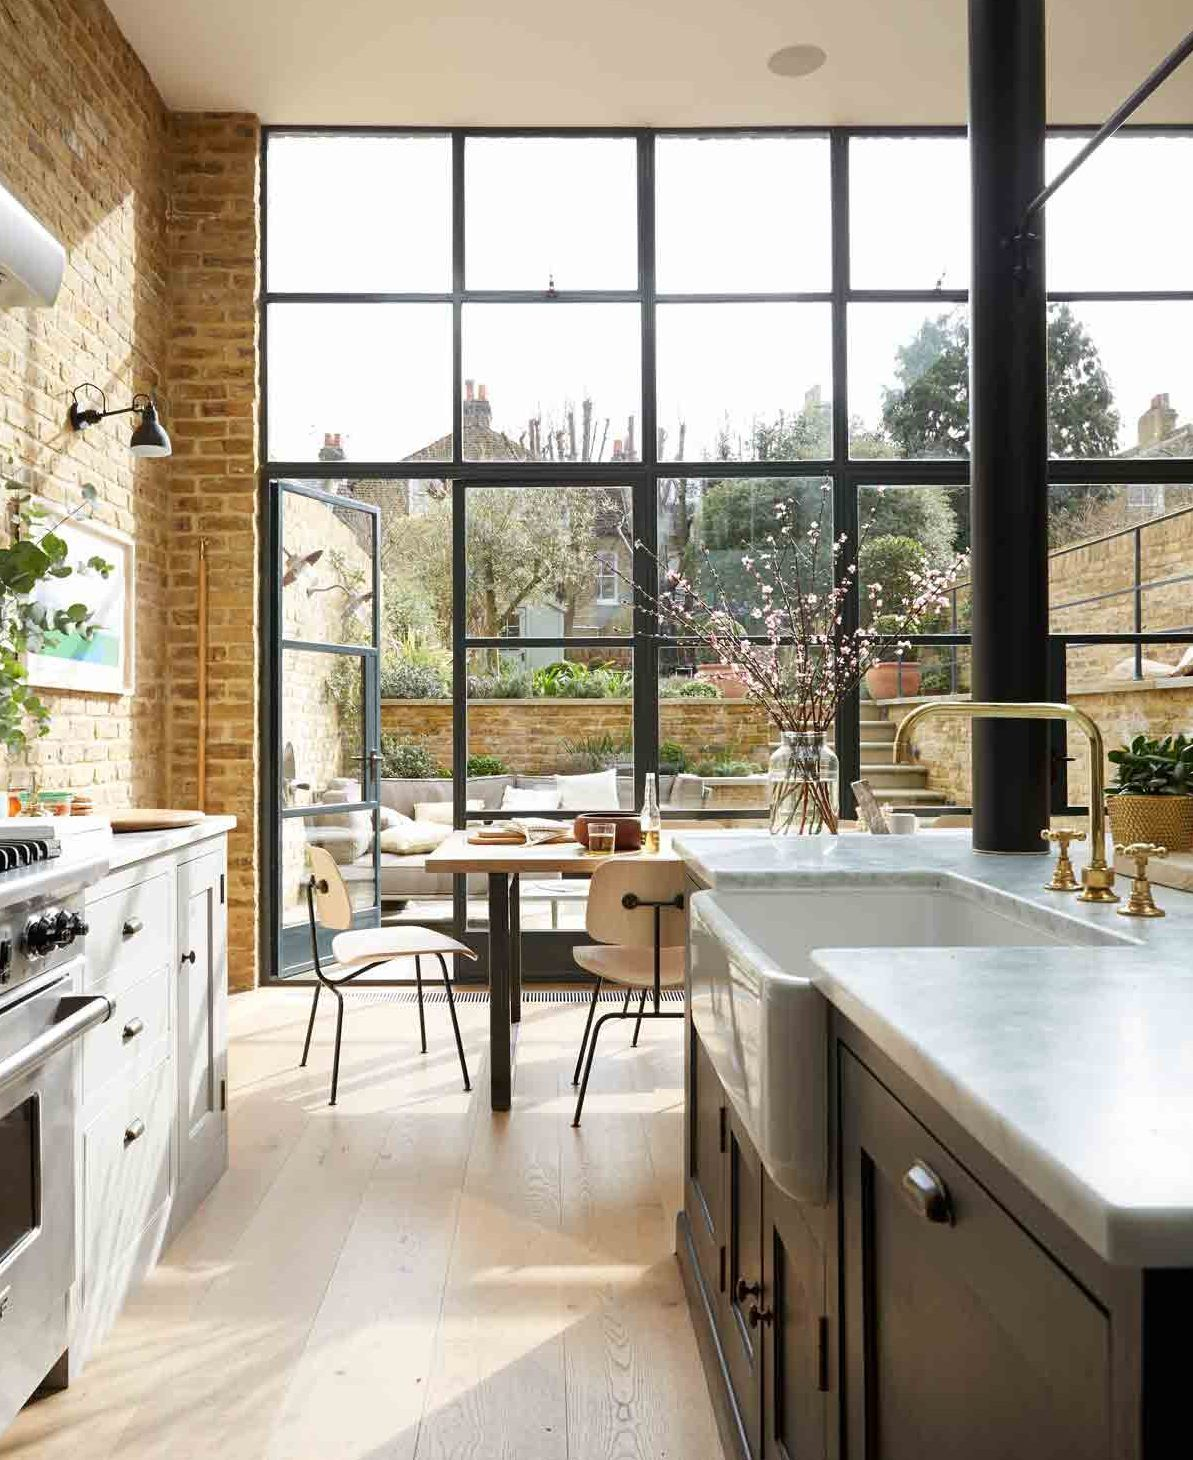 Explore this GORGEOUS south London home complete with exposed brick and Crittall features